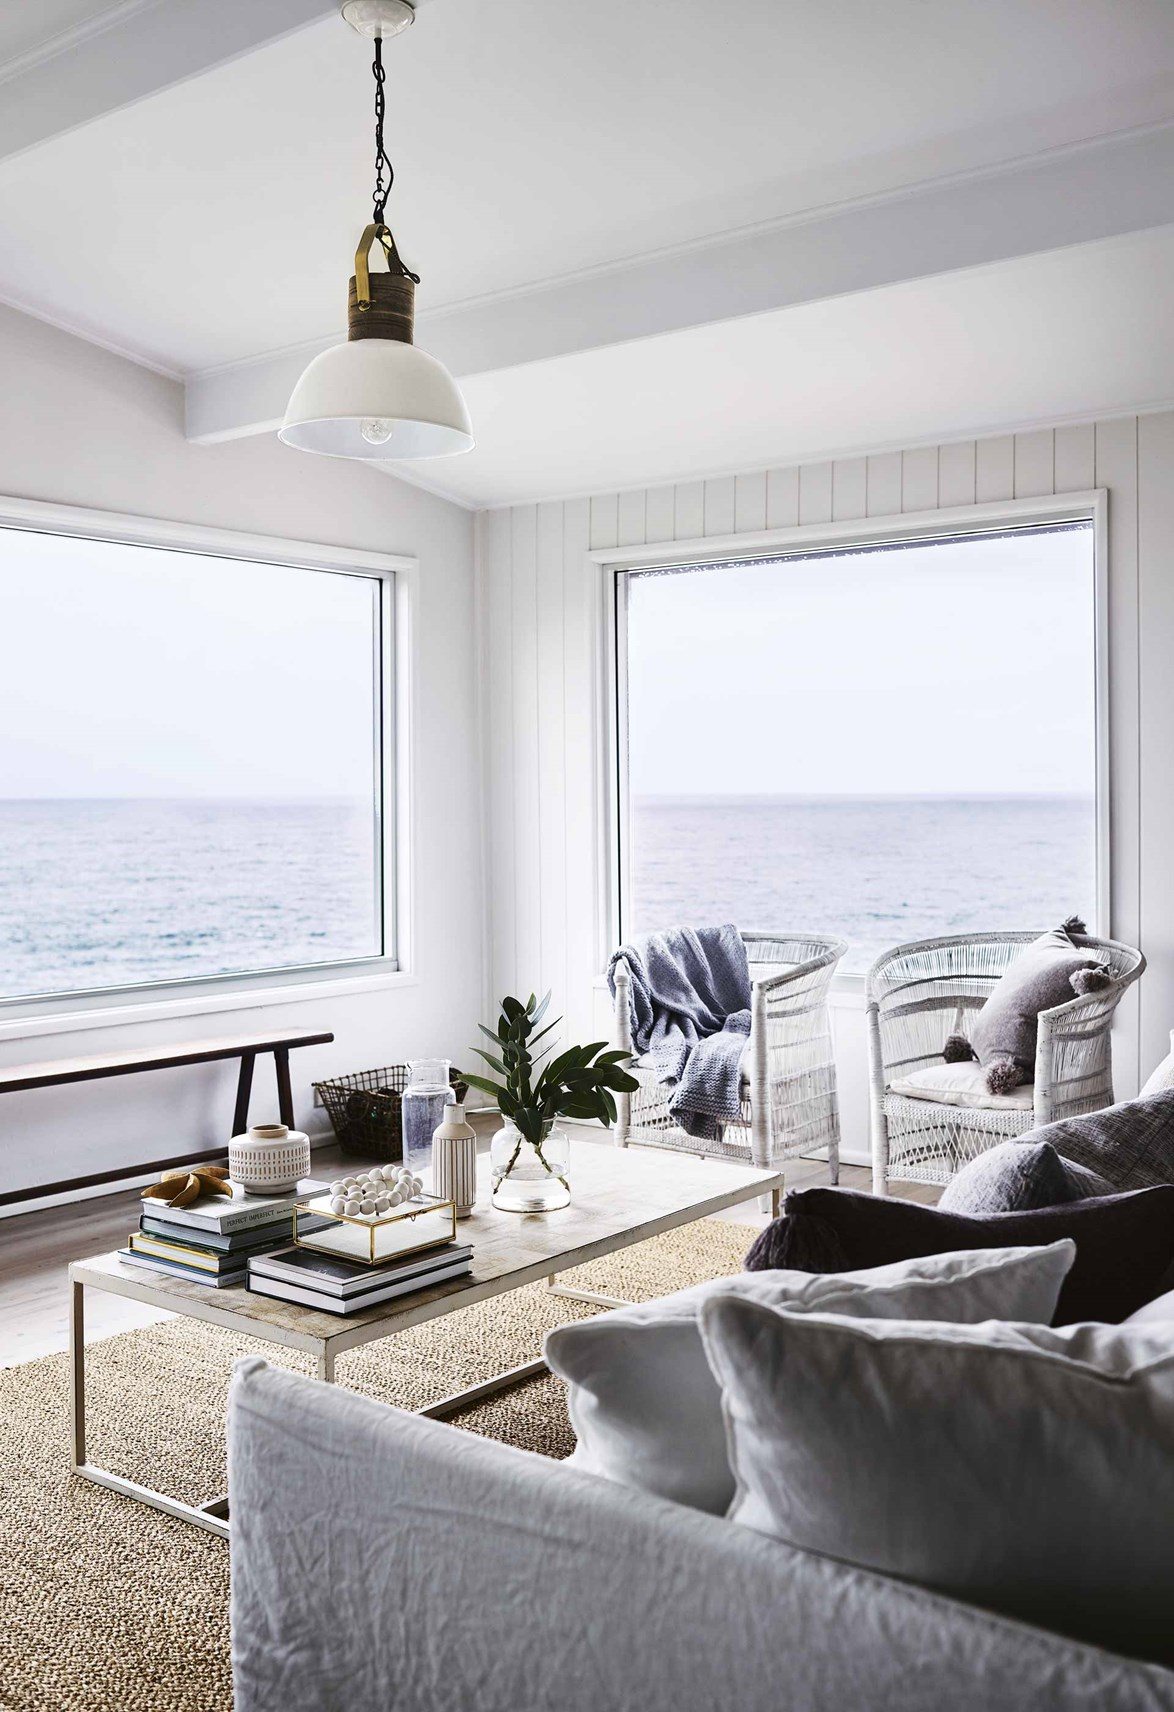 "**Cliff House, Mollymook, NSW**<br> When you envision an ideal beach house, uninterrupted ocean views are a must. This is exactly what this beautiful [beach house in Mollymook](https://www.homestolove.com.au/beach-house-mollymook-16946|target=""_blank"") delivers in spades. With its modern coastal aesthetic and huge picture windows that allow you to look out over the ocean and thoughtful styling touches throughout, Cliff House has everything you need for a relaxing seaside getaway. Be sure to [explore Mollymook and nearby Ulladulla >](https://www.homestolove.com.au/mollymook-and-ulladulla-where-to-eat-and-shop-10380